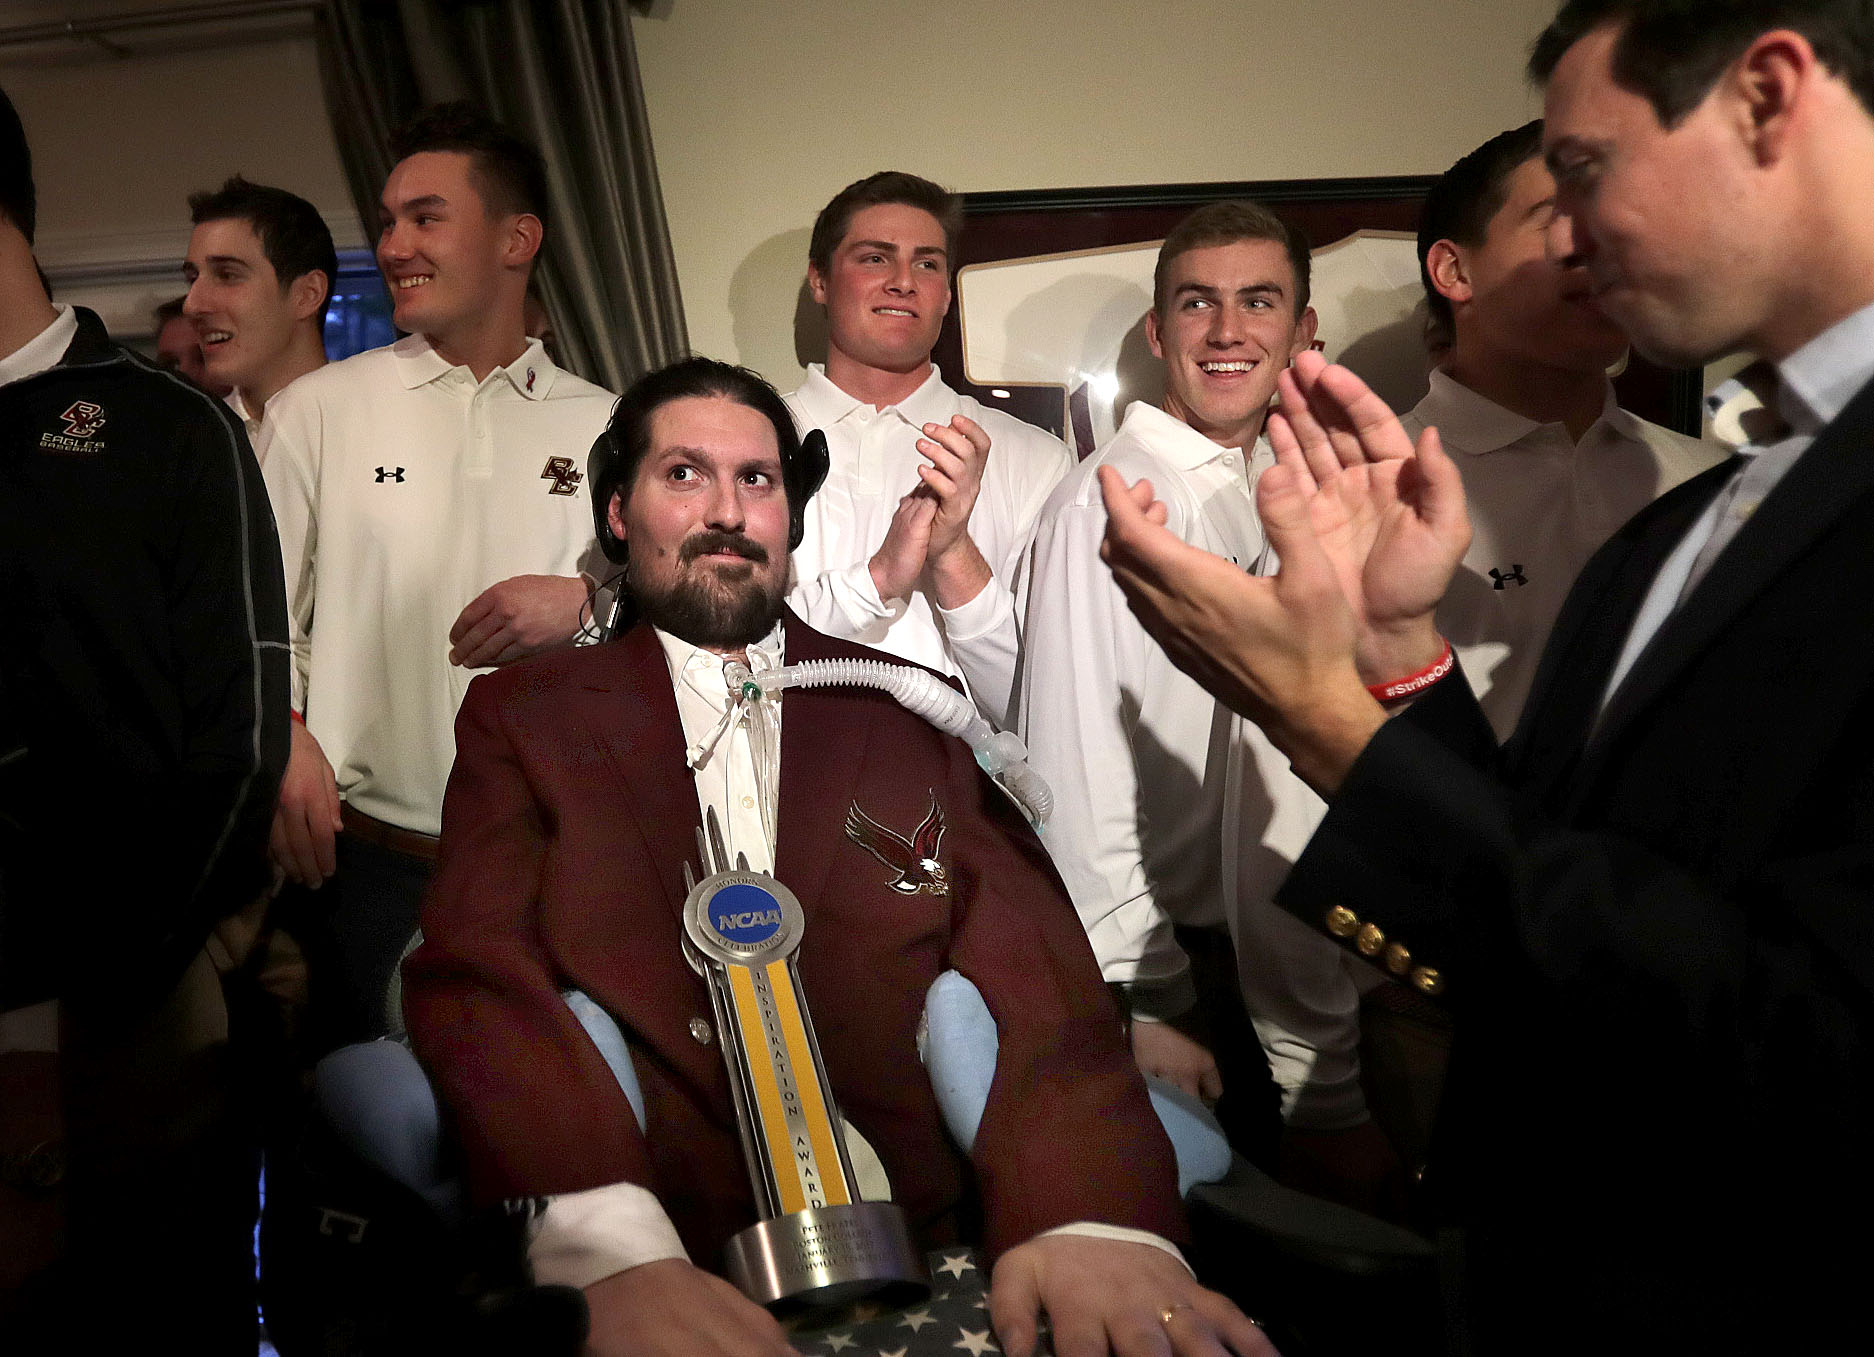 Pete Frates Recieves Award From NCAA